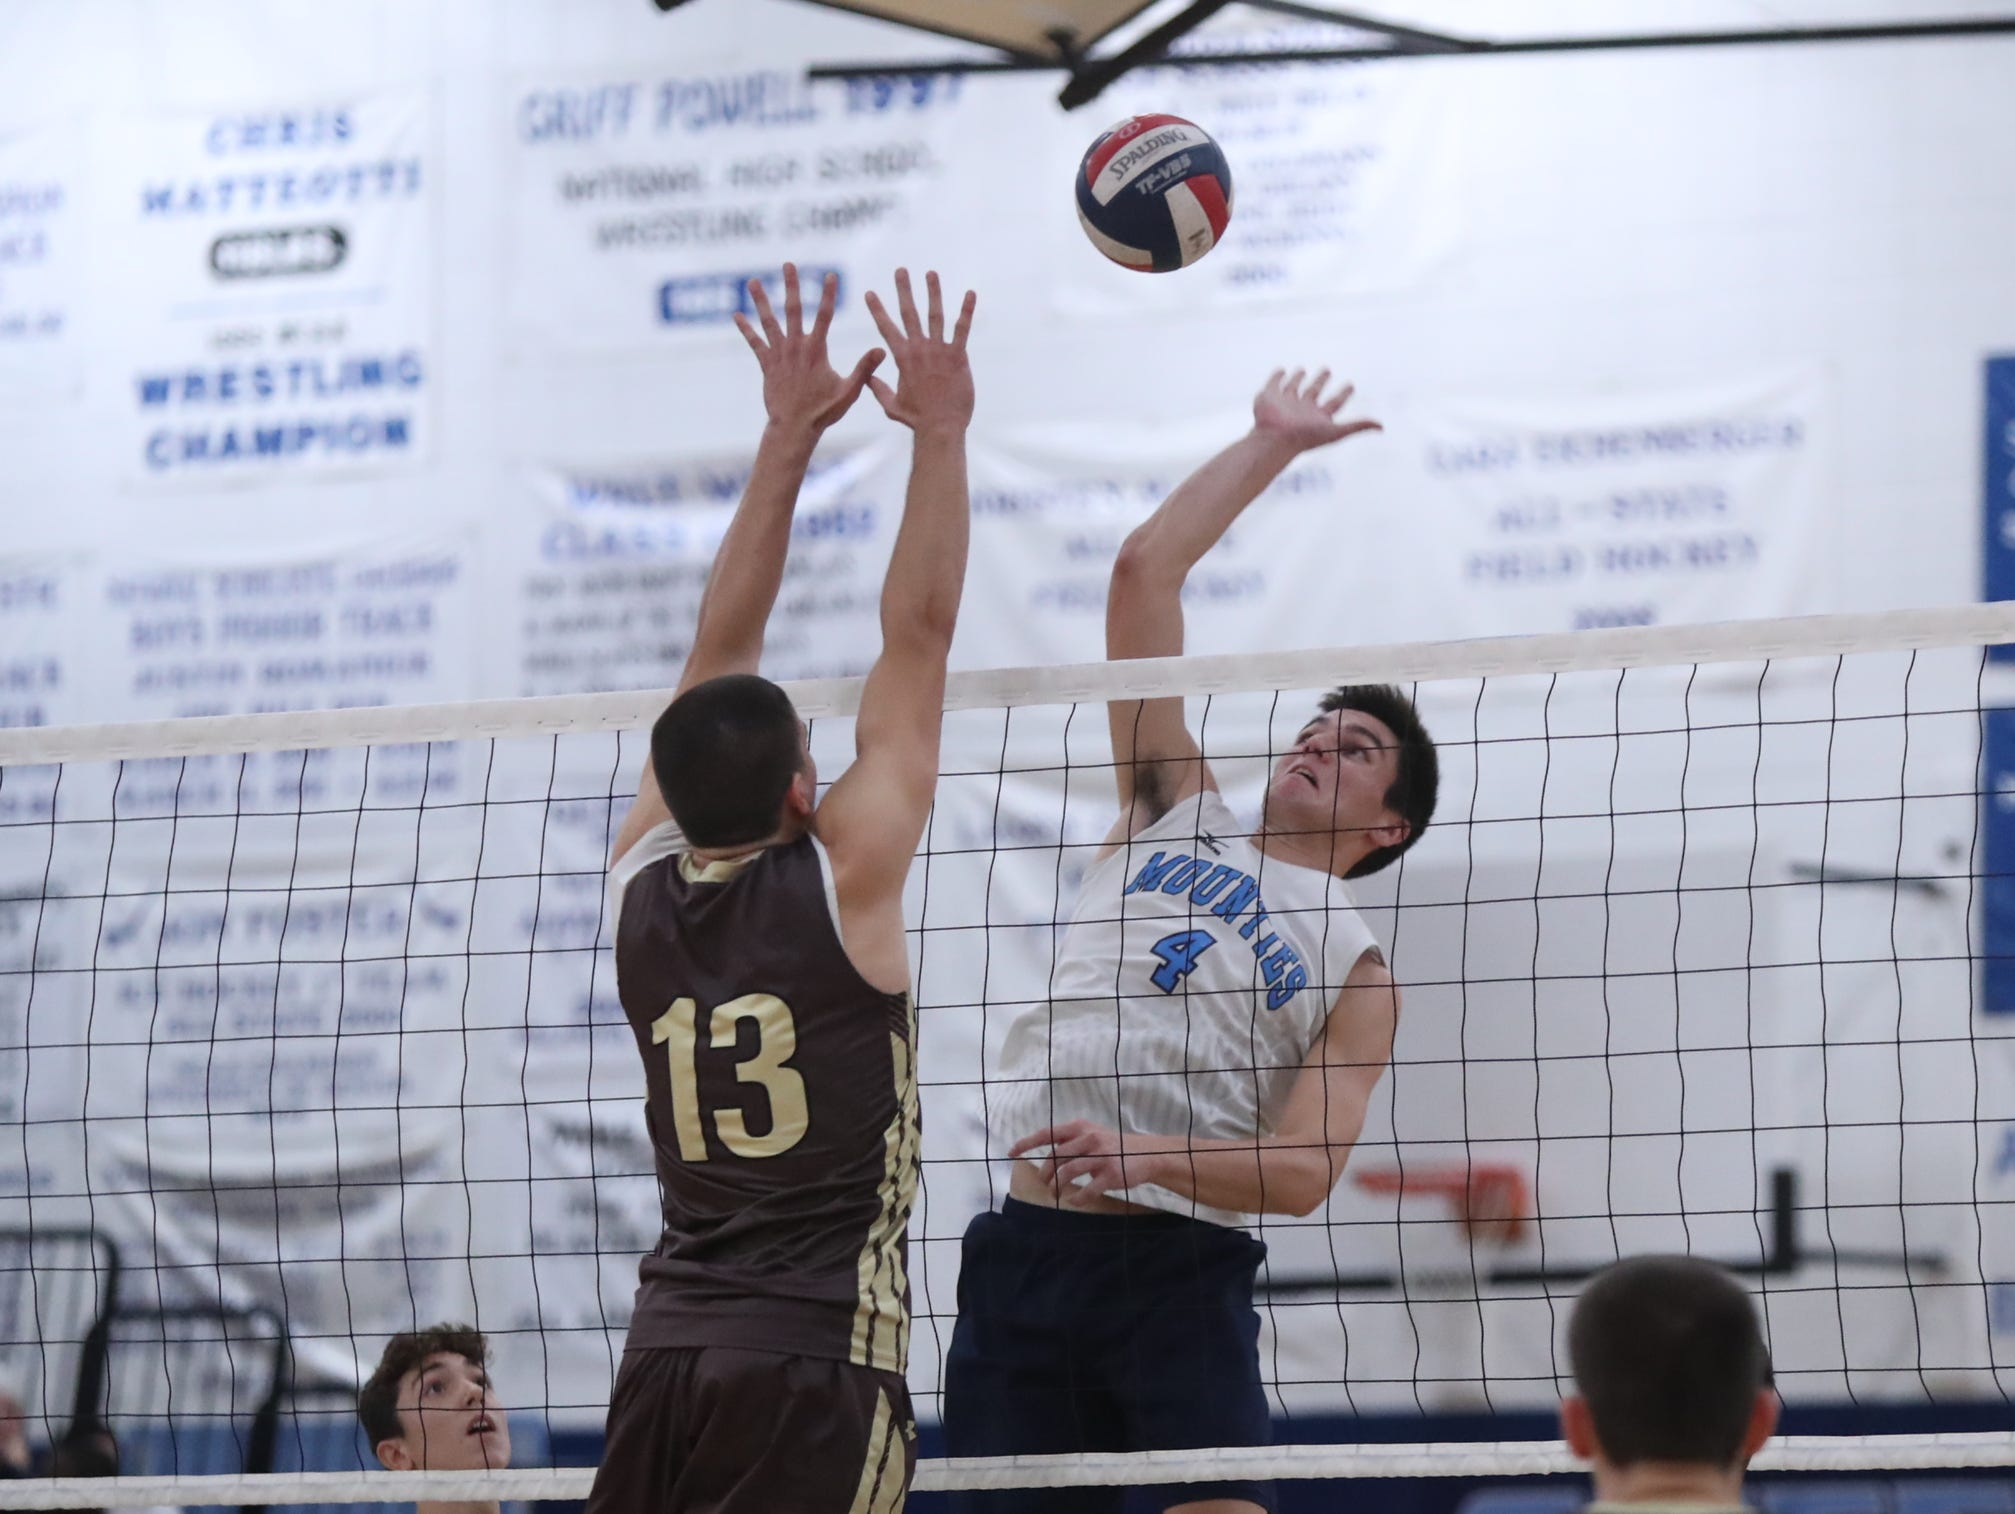 Suffern's Will Krebs (4) hits a shot as Clarkstown South's Luke Pallogudis (13) attempts a block during their 3-1 win in boys volleyball action at Suffern High School in Suffern on Thursday, October 11, 2018.